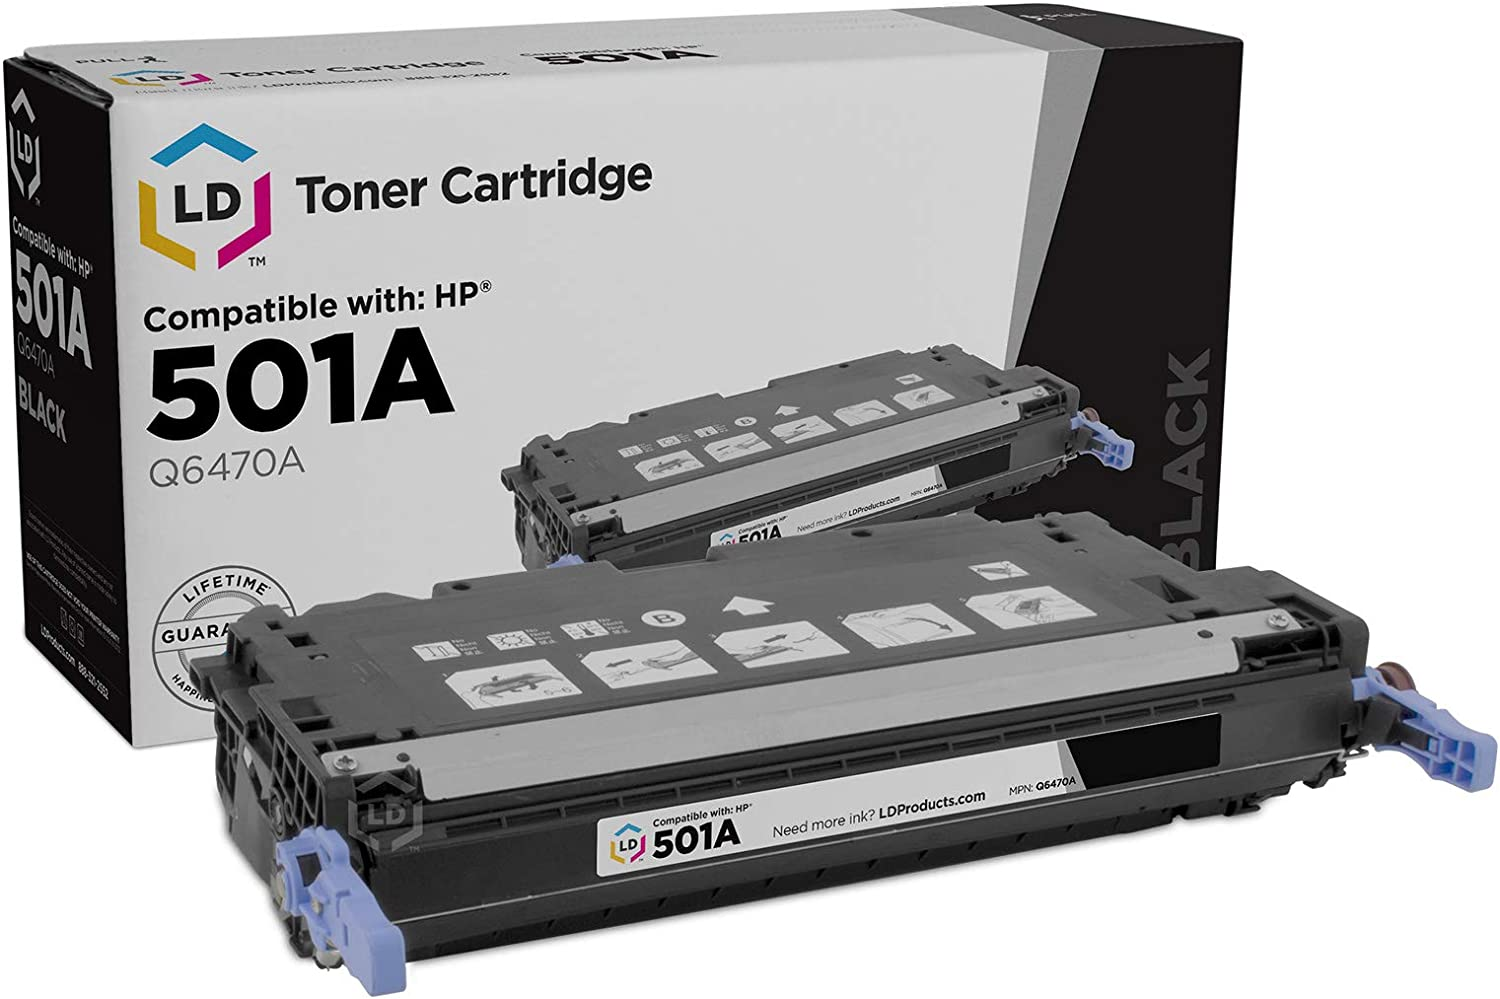 LD Remanufactured Toner Cartridge Replacement for HP 501A Q6470A (Black)